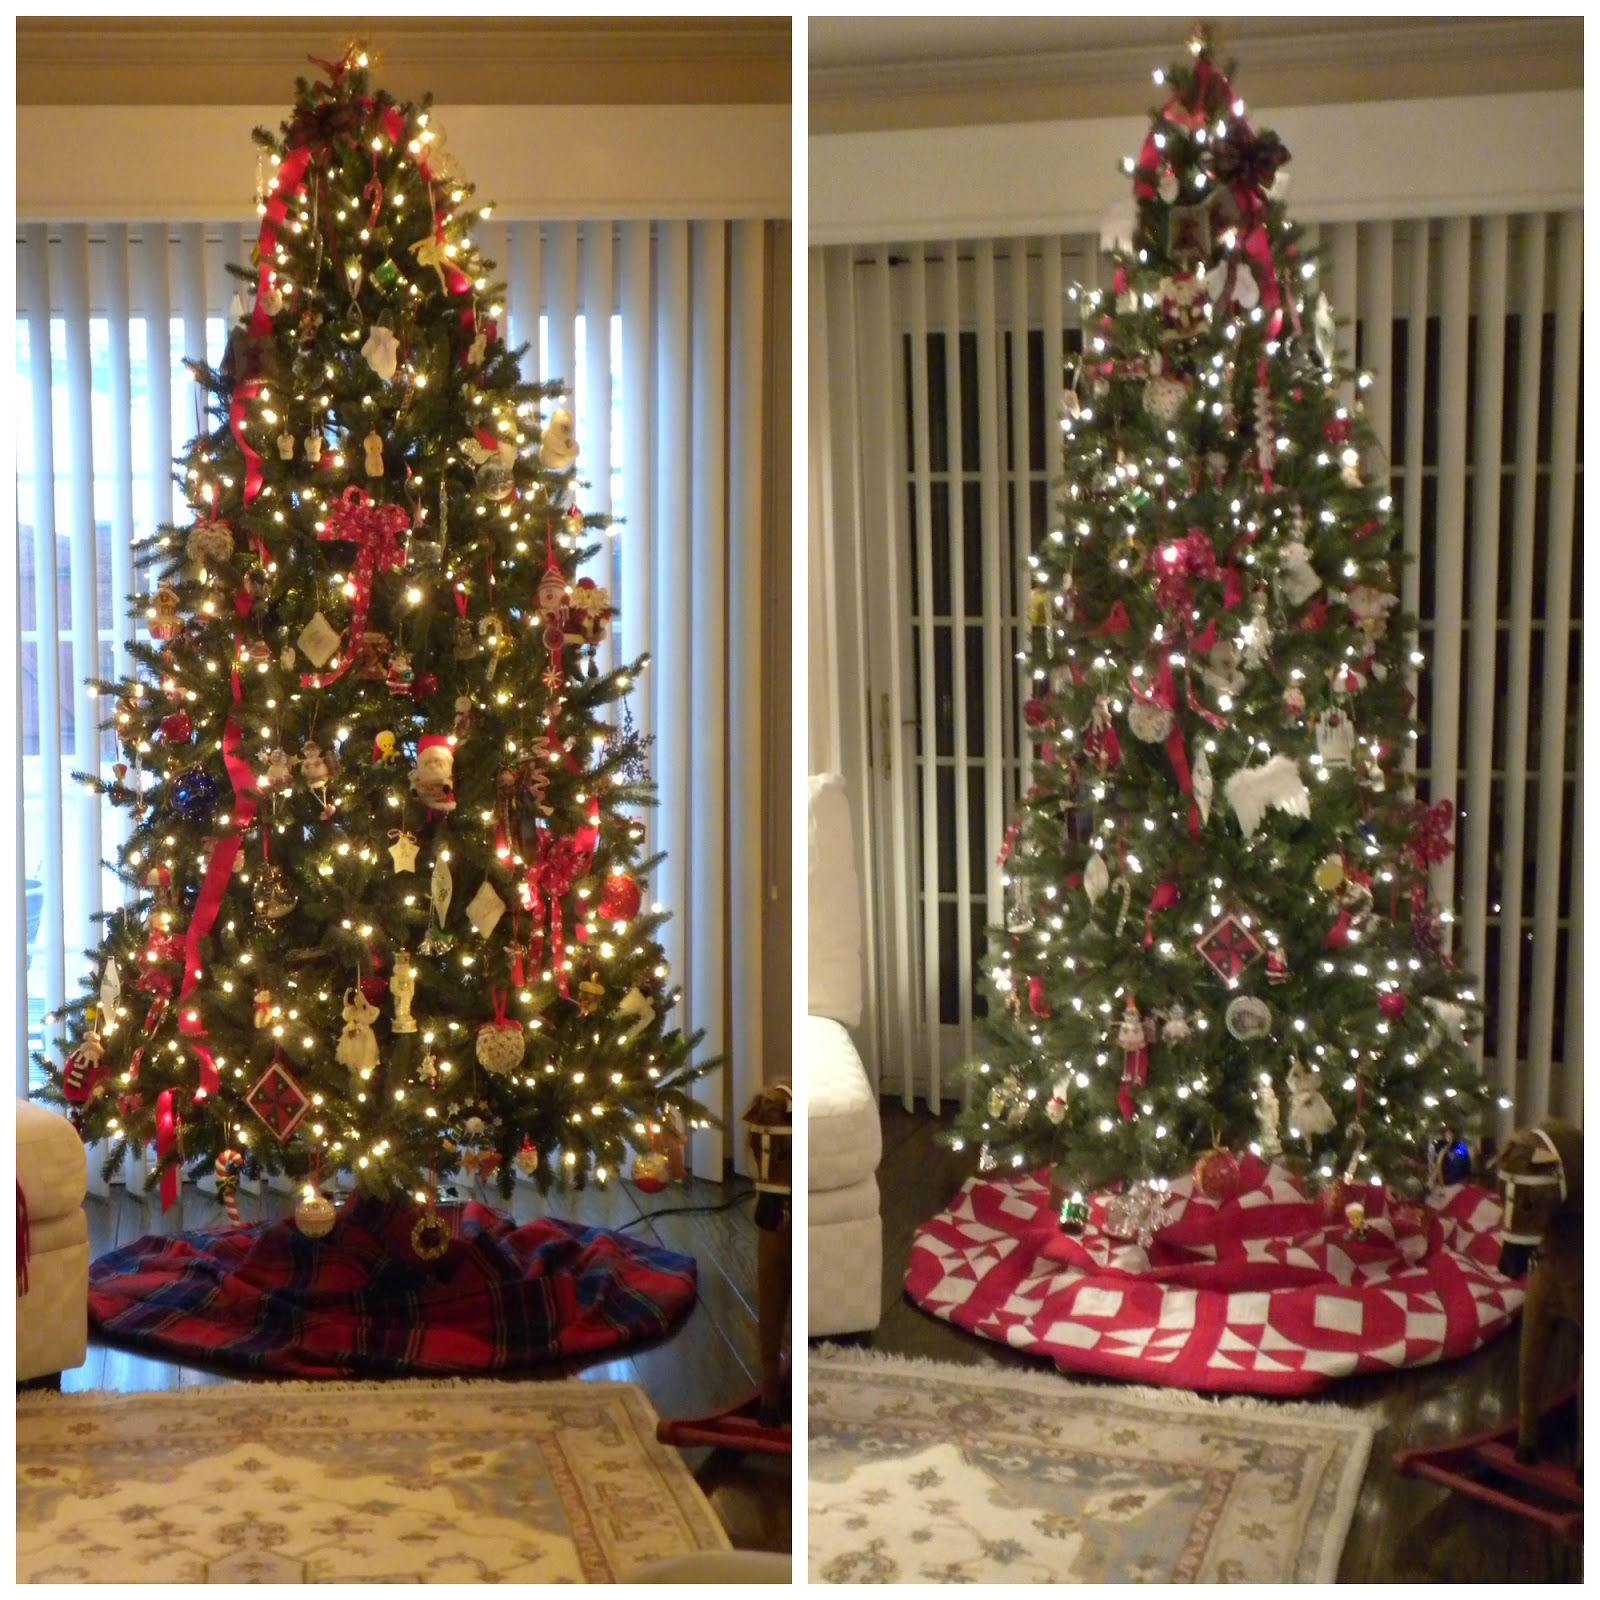 Panoply: O Christmas Tree, Have You Lost Weight?